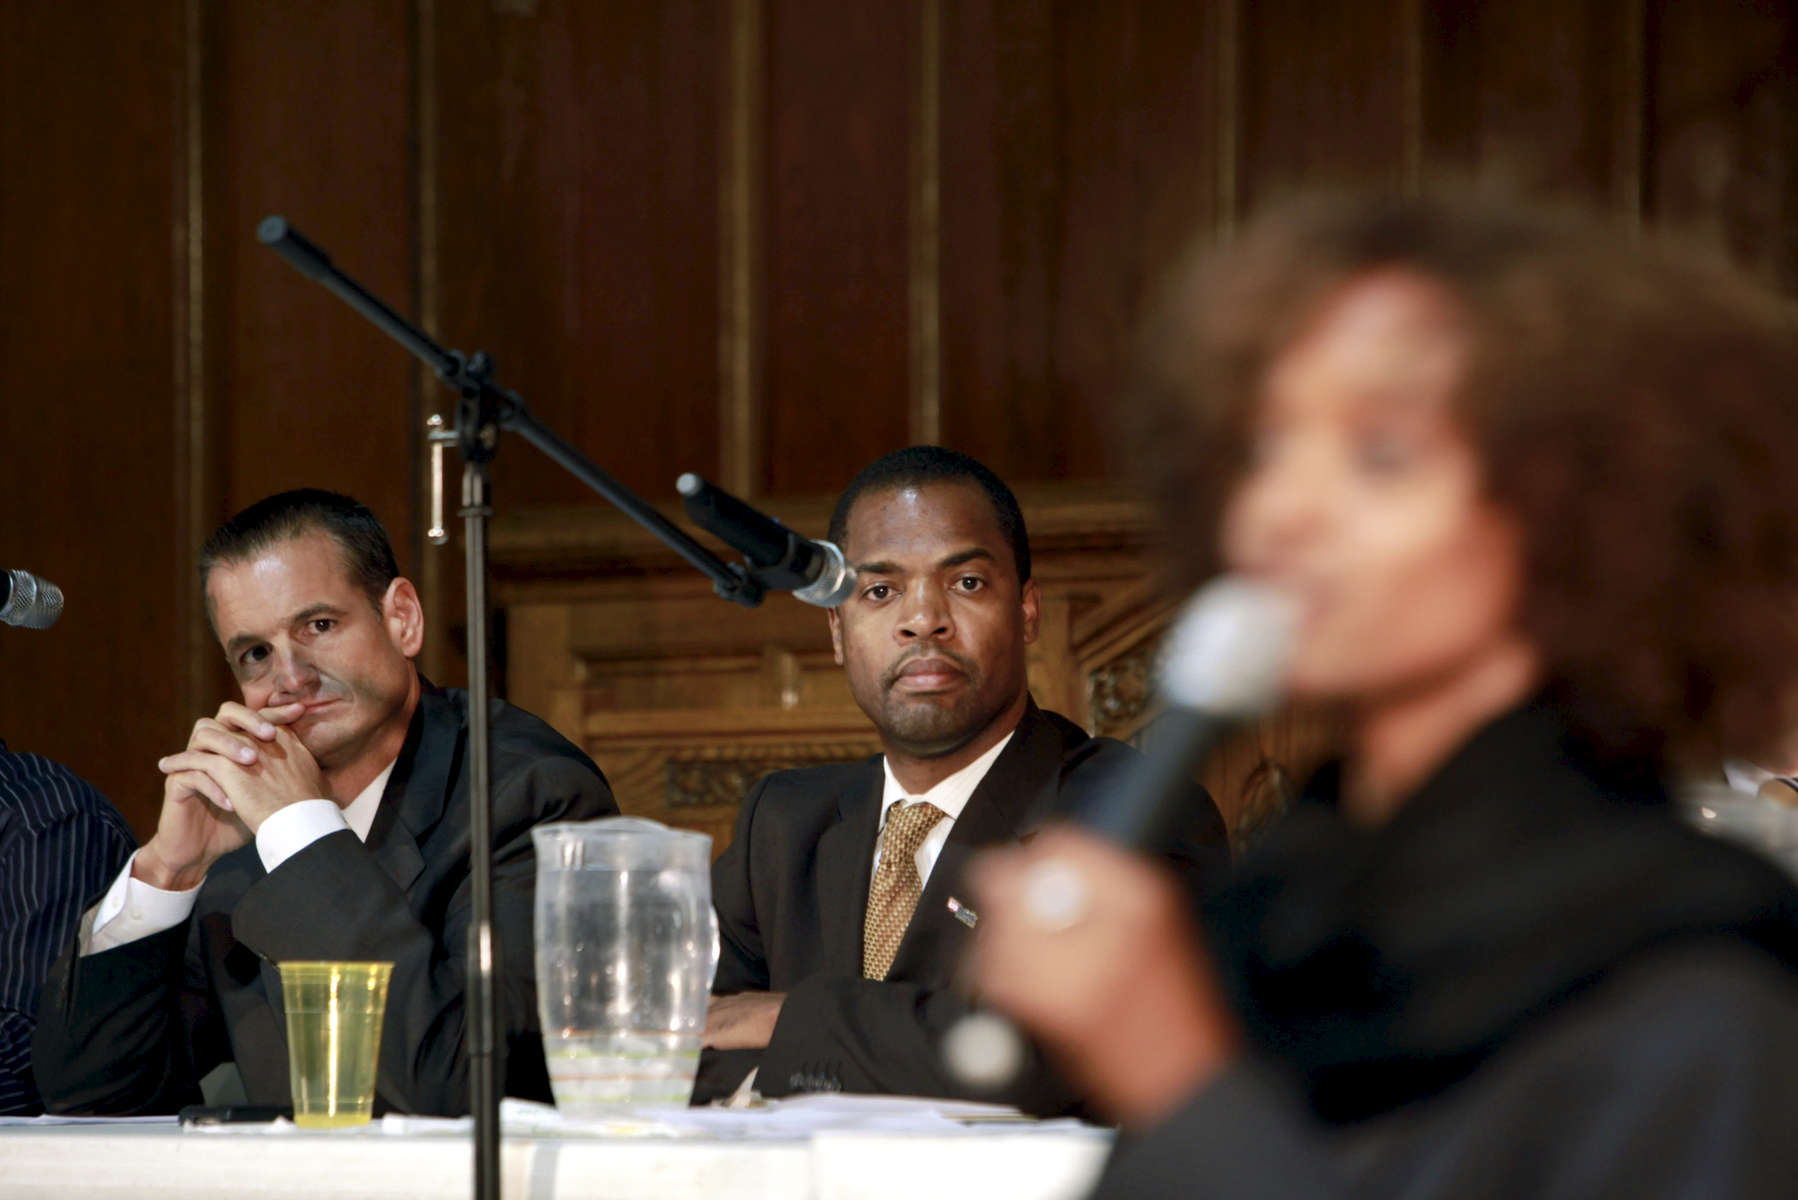 William Fanter, left, senior vice president and Chicago regional manager of US Bank and Robert V. McGhee, vice president of community development, listen as community members and local politicians discuss the foreclosure crisis on Chicago's west side and in neighboring Maywood, Illinois.